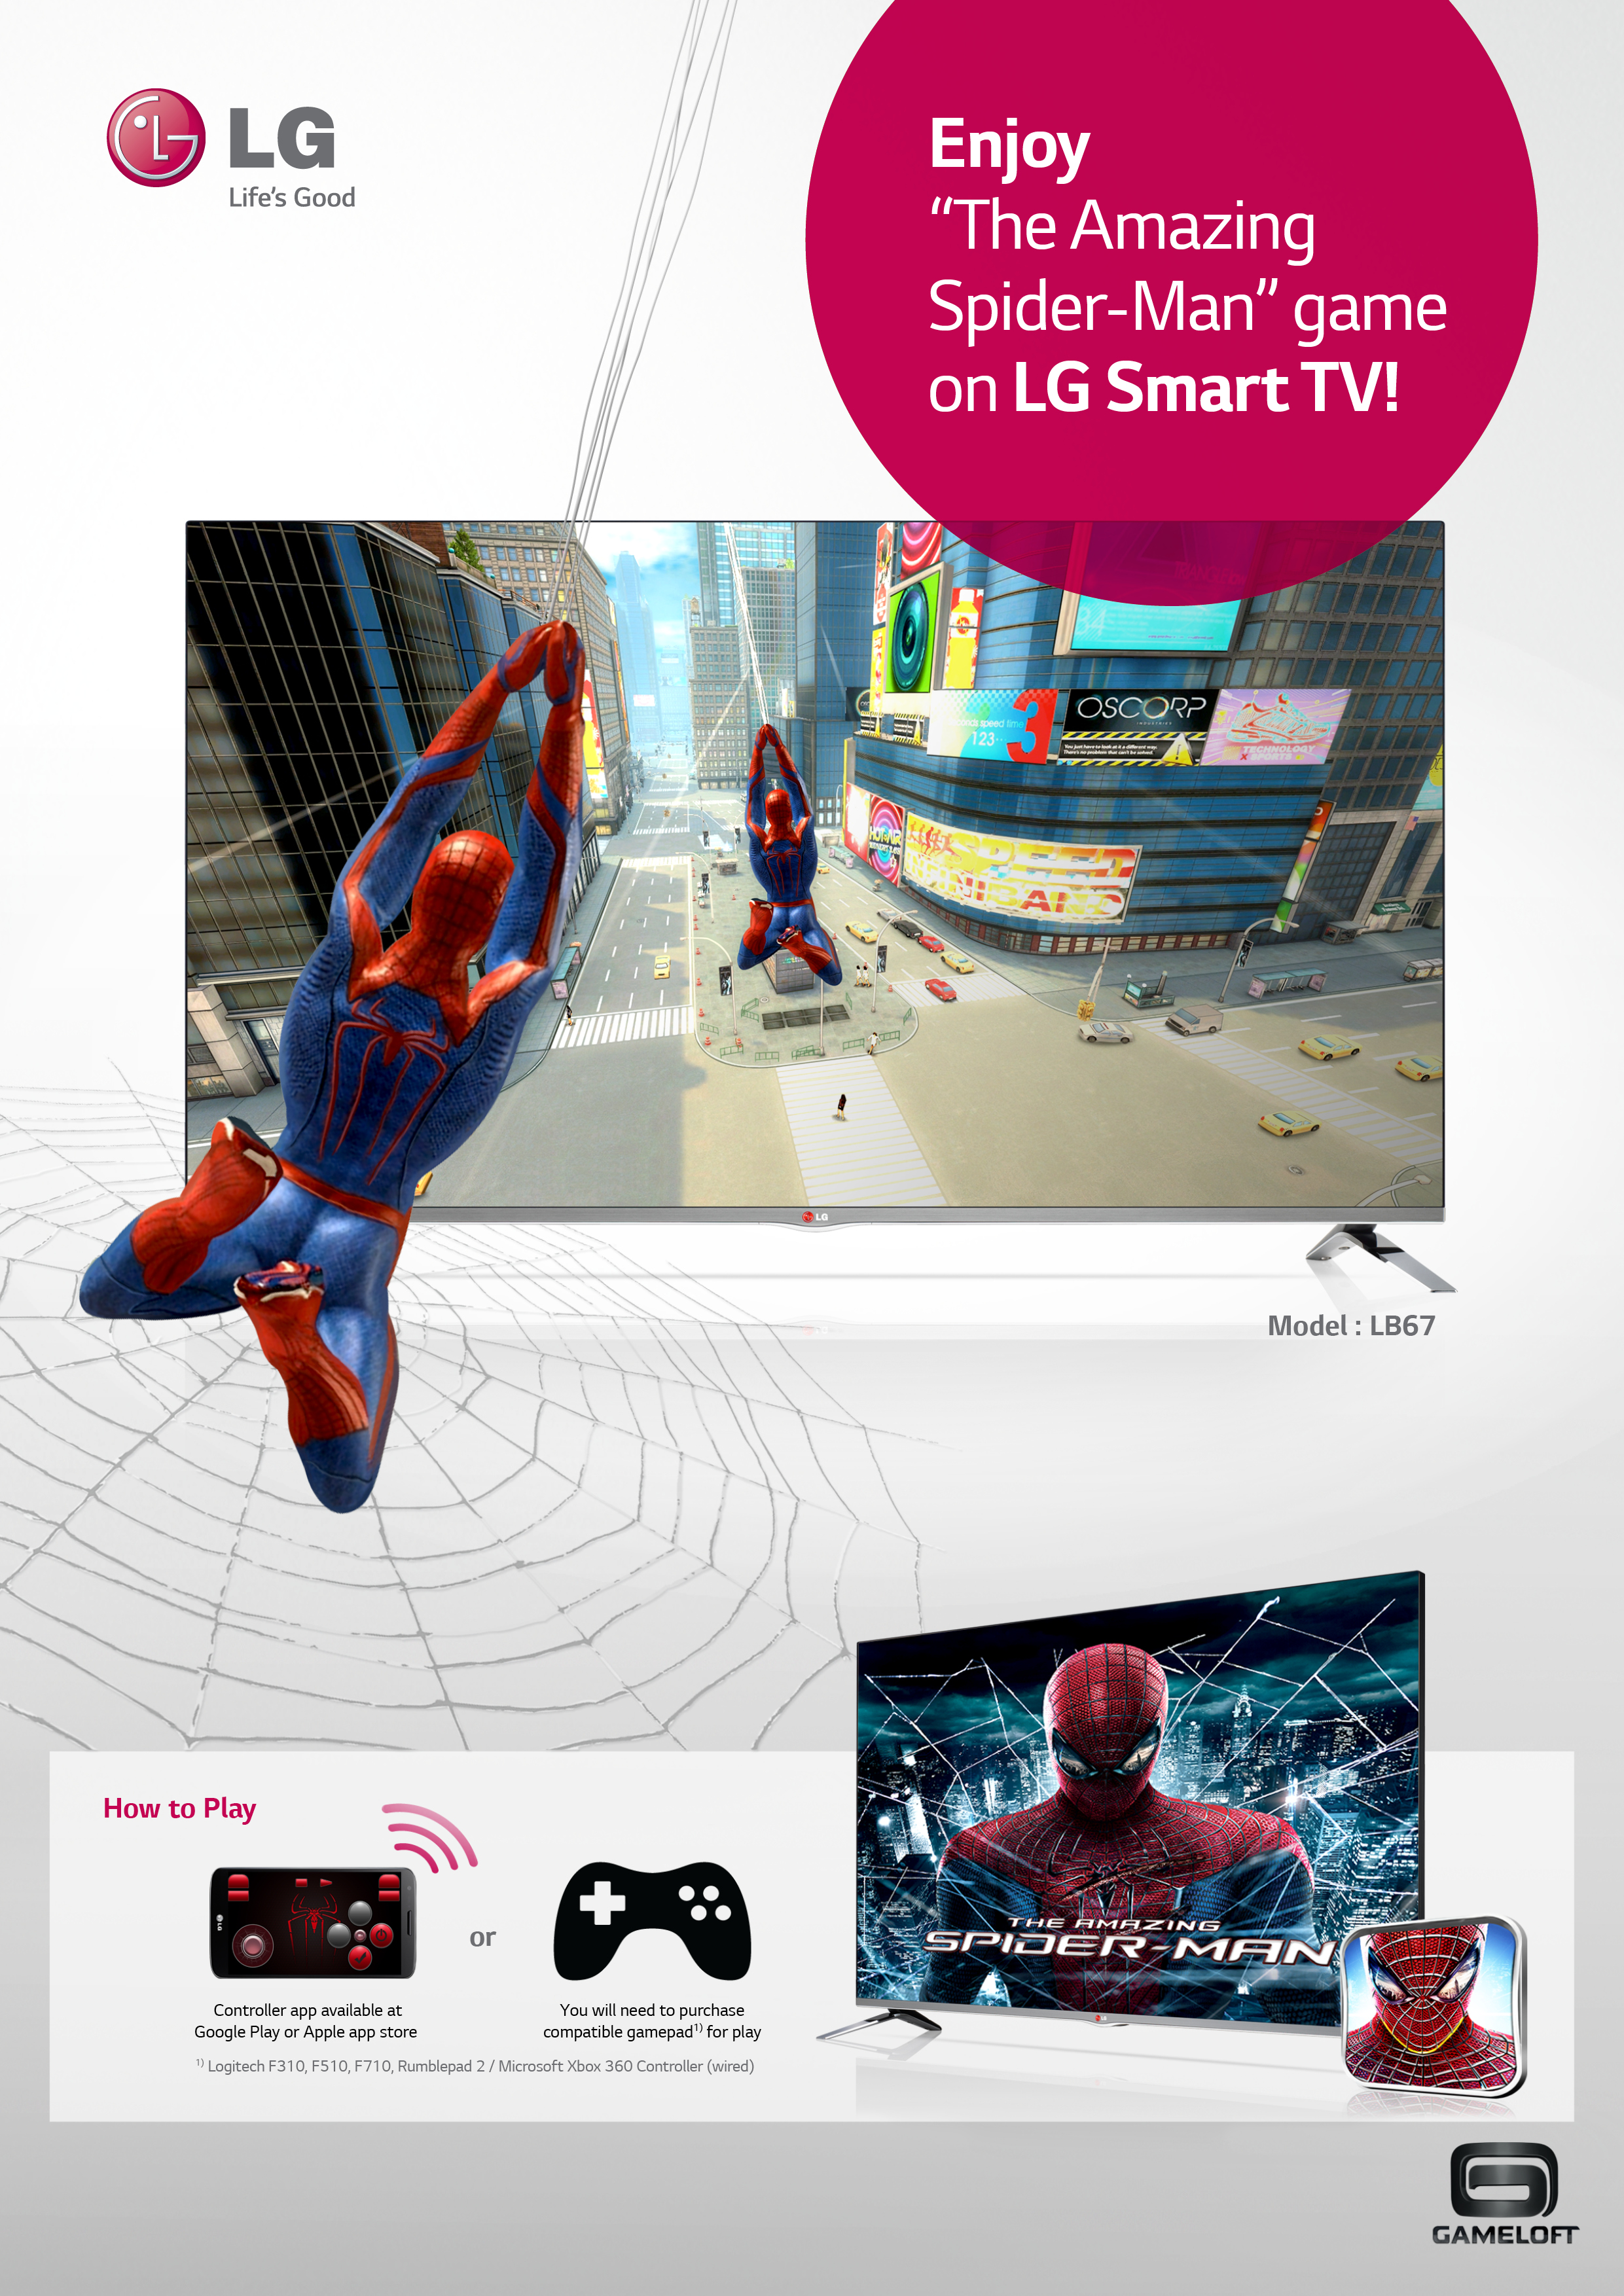 LG Smart TV game